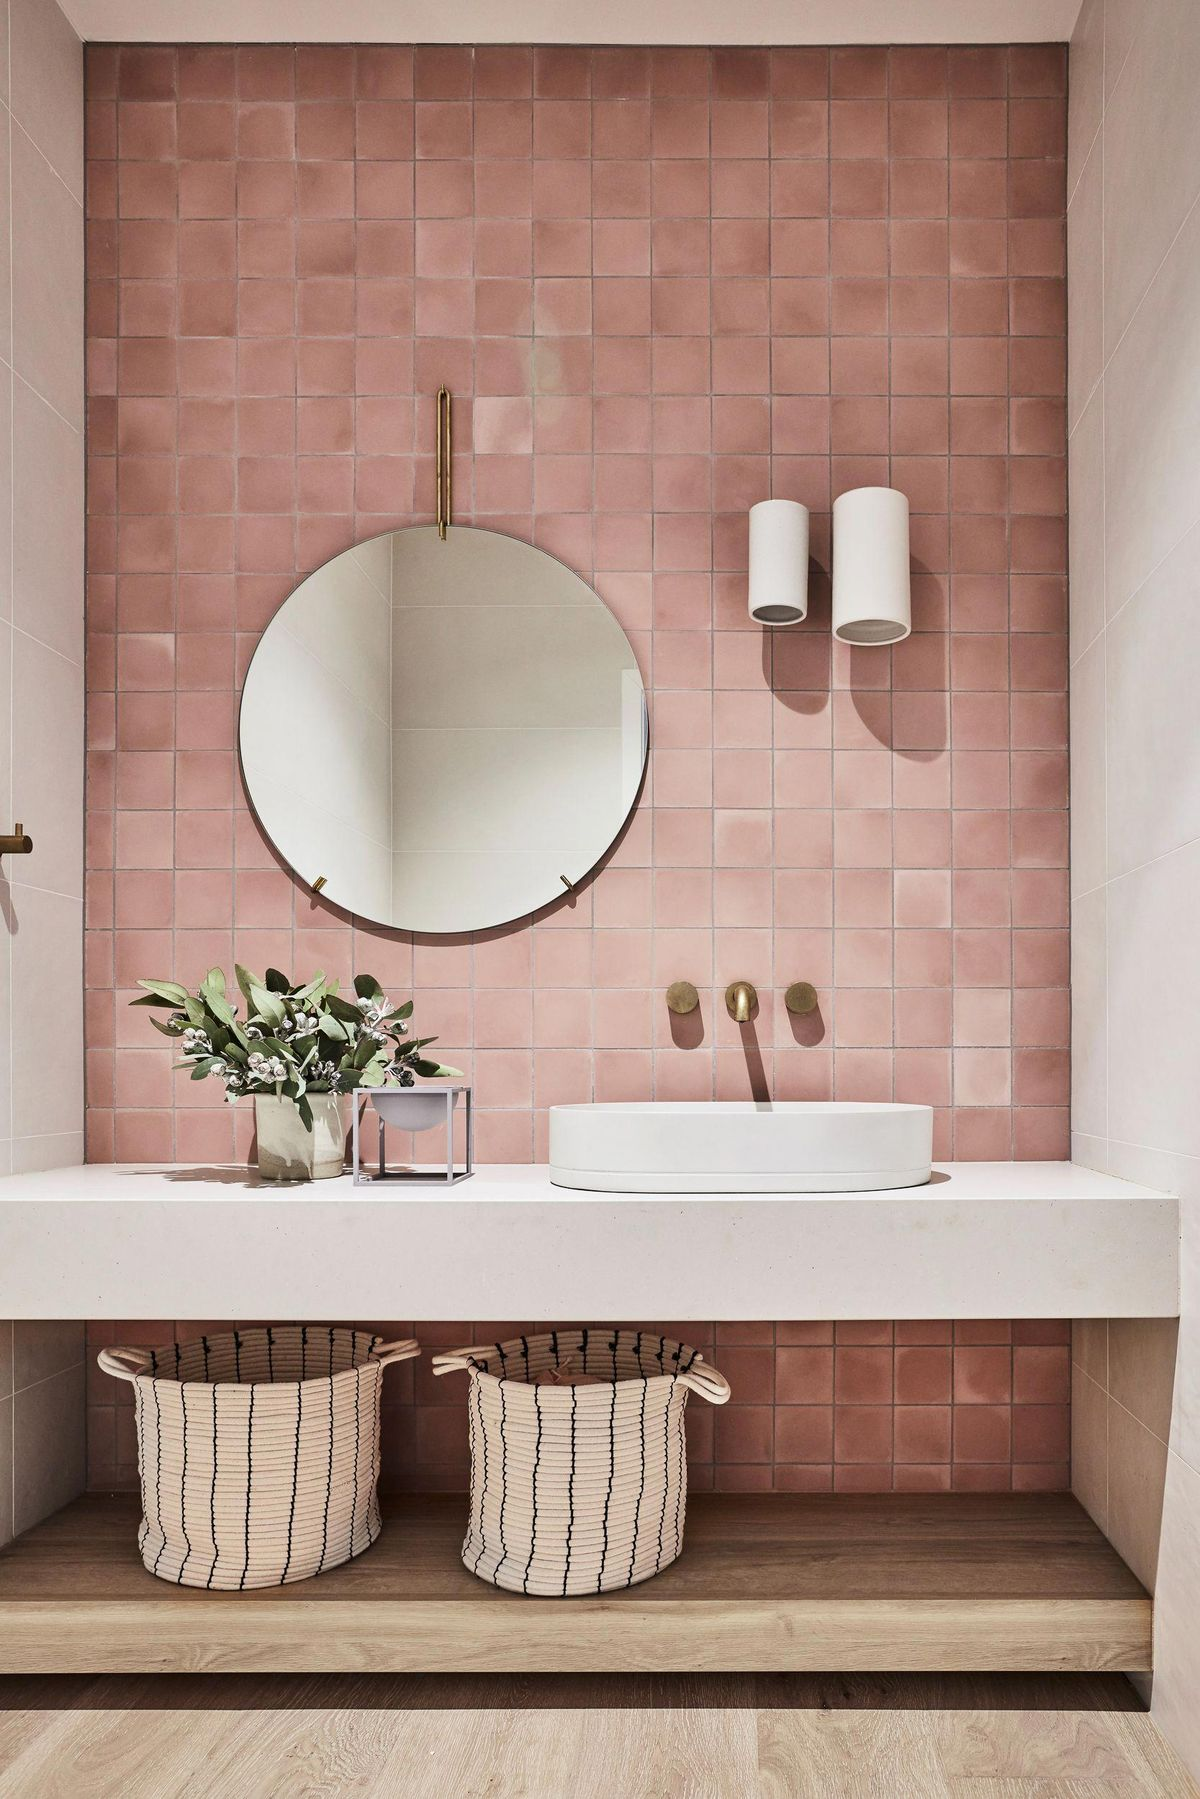 I'm really looking forward to trying out the idea. Pretty Bathroom Decor